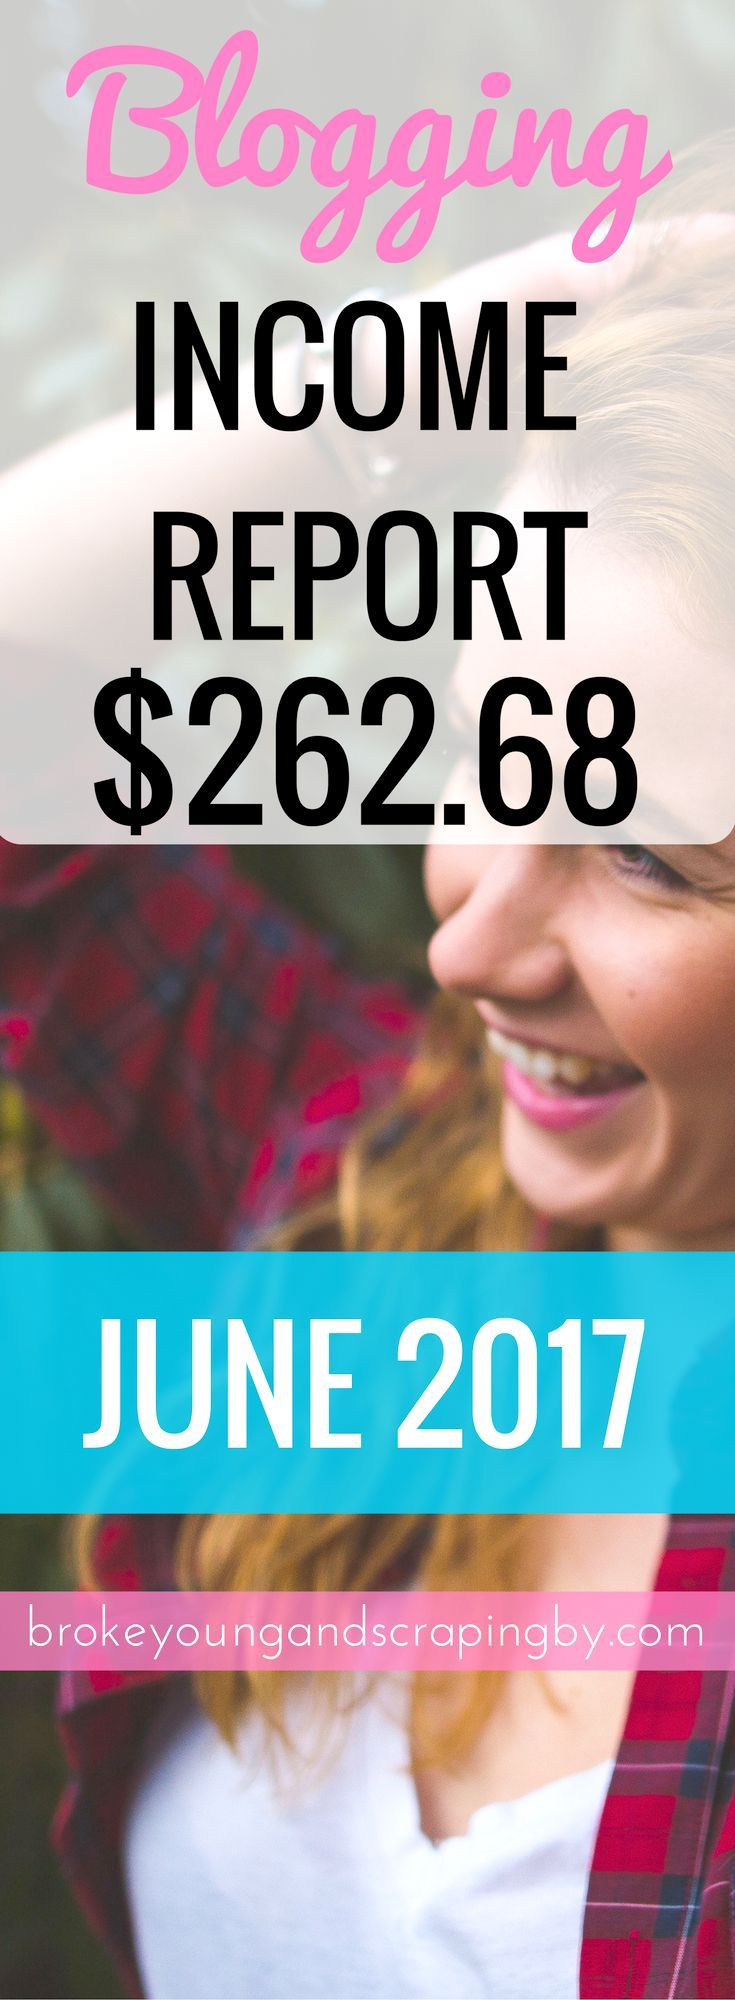 Make a side hustle while sitting in your underwear! I'll show you how I made $262.68 blogging in my fourth month!